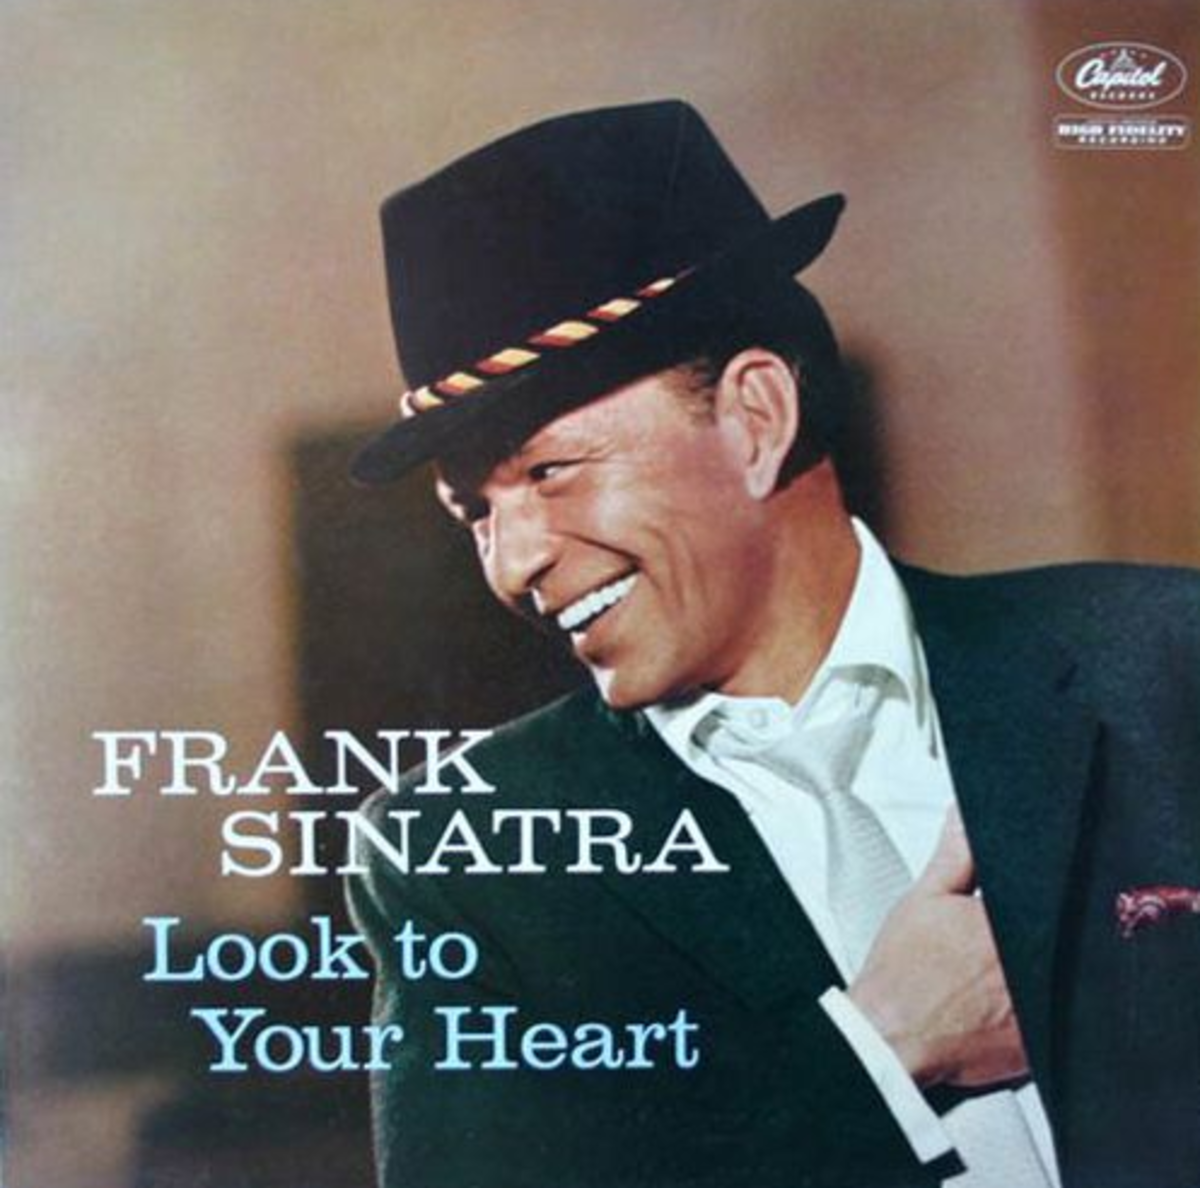 Making Amazing Love With Frank Sinatra My Way